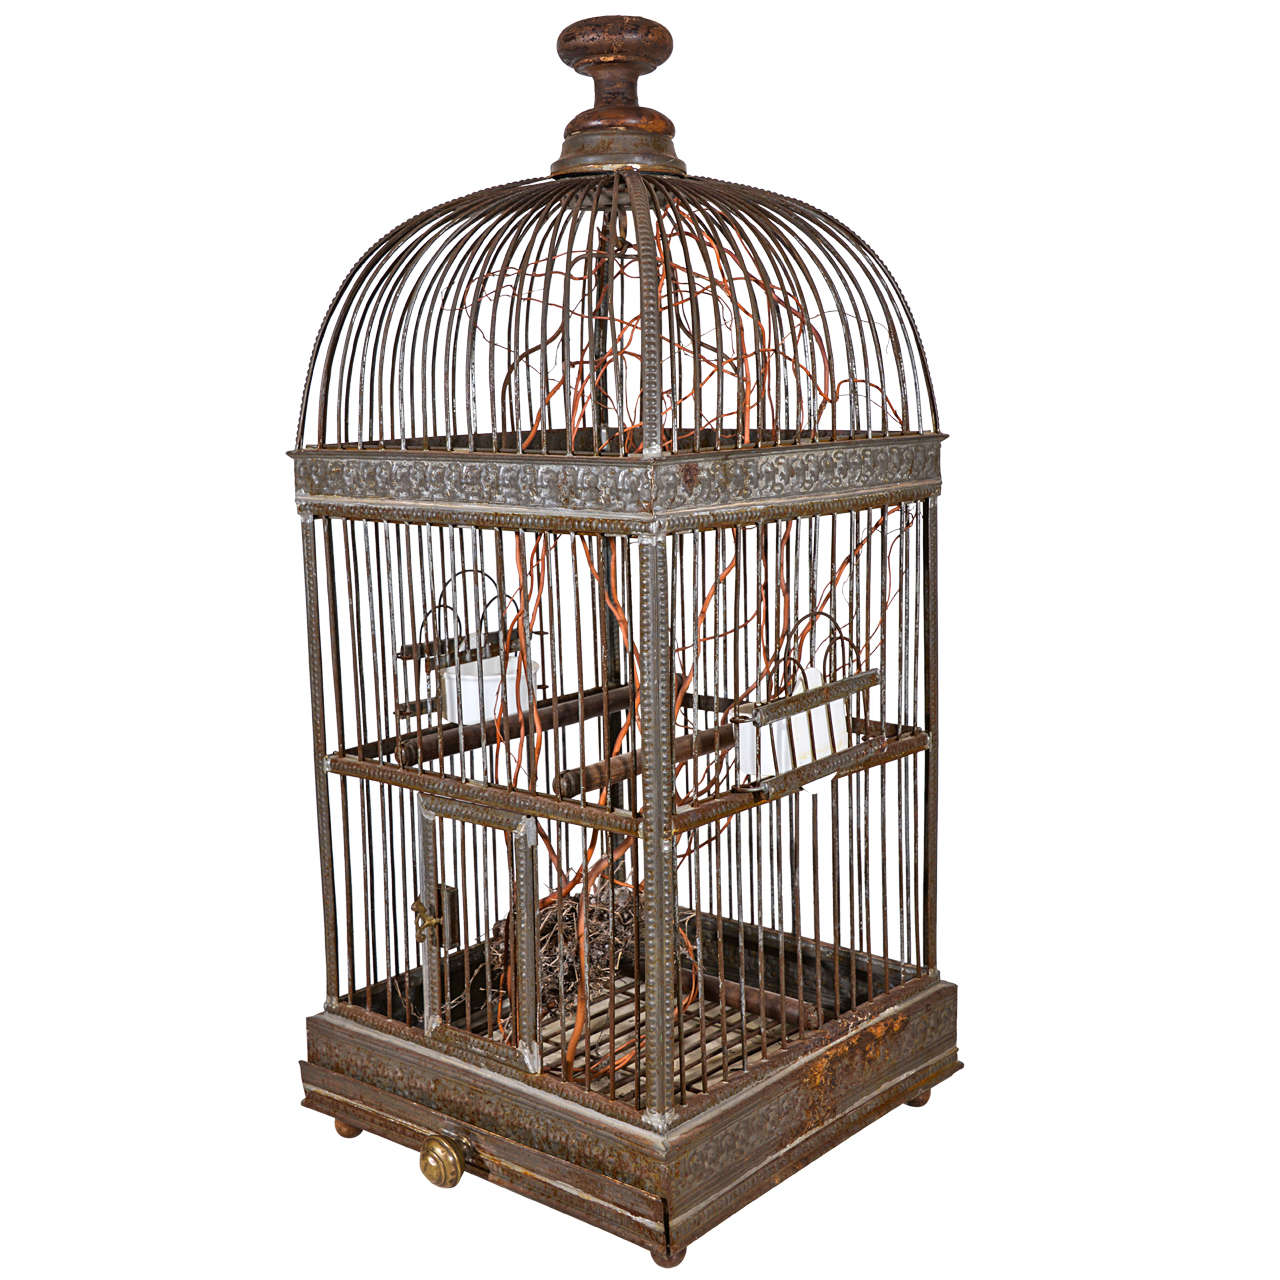 Old fashioned bird cages for sale 68